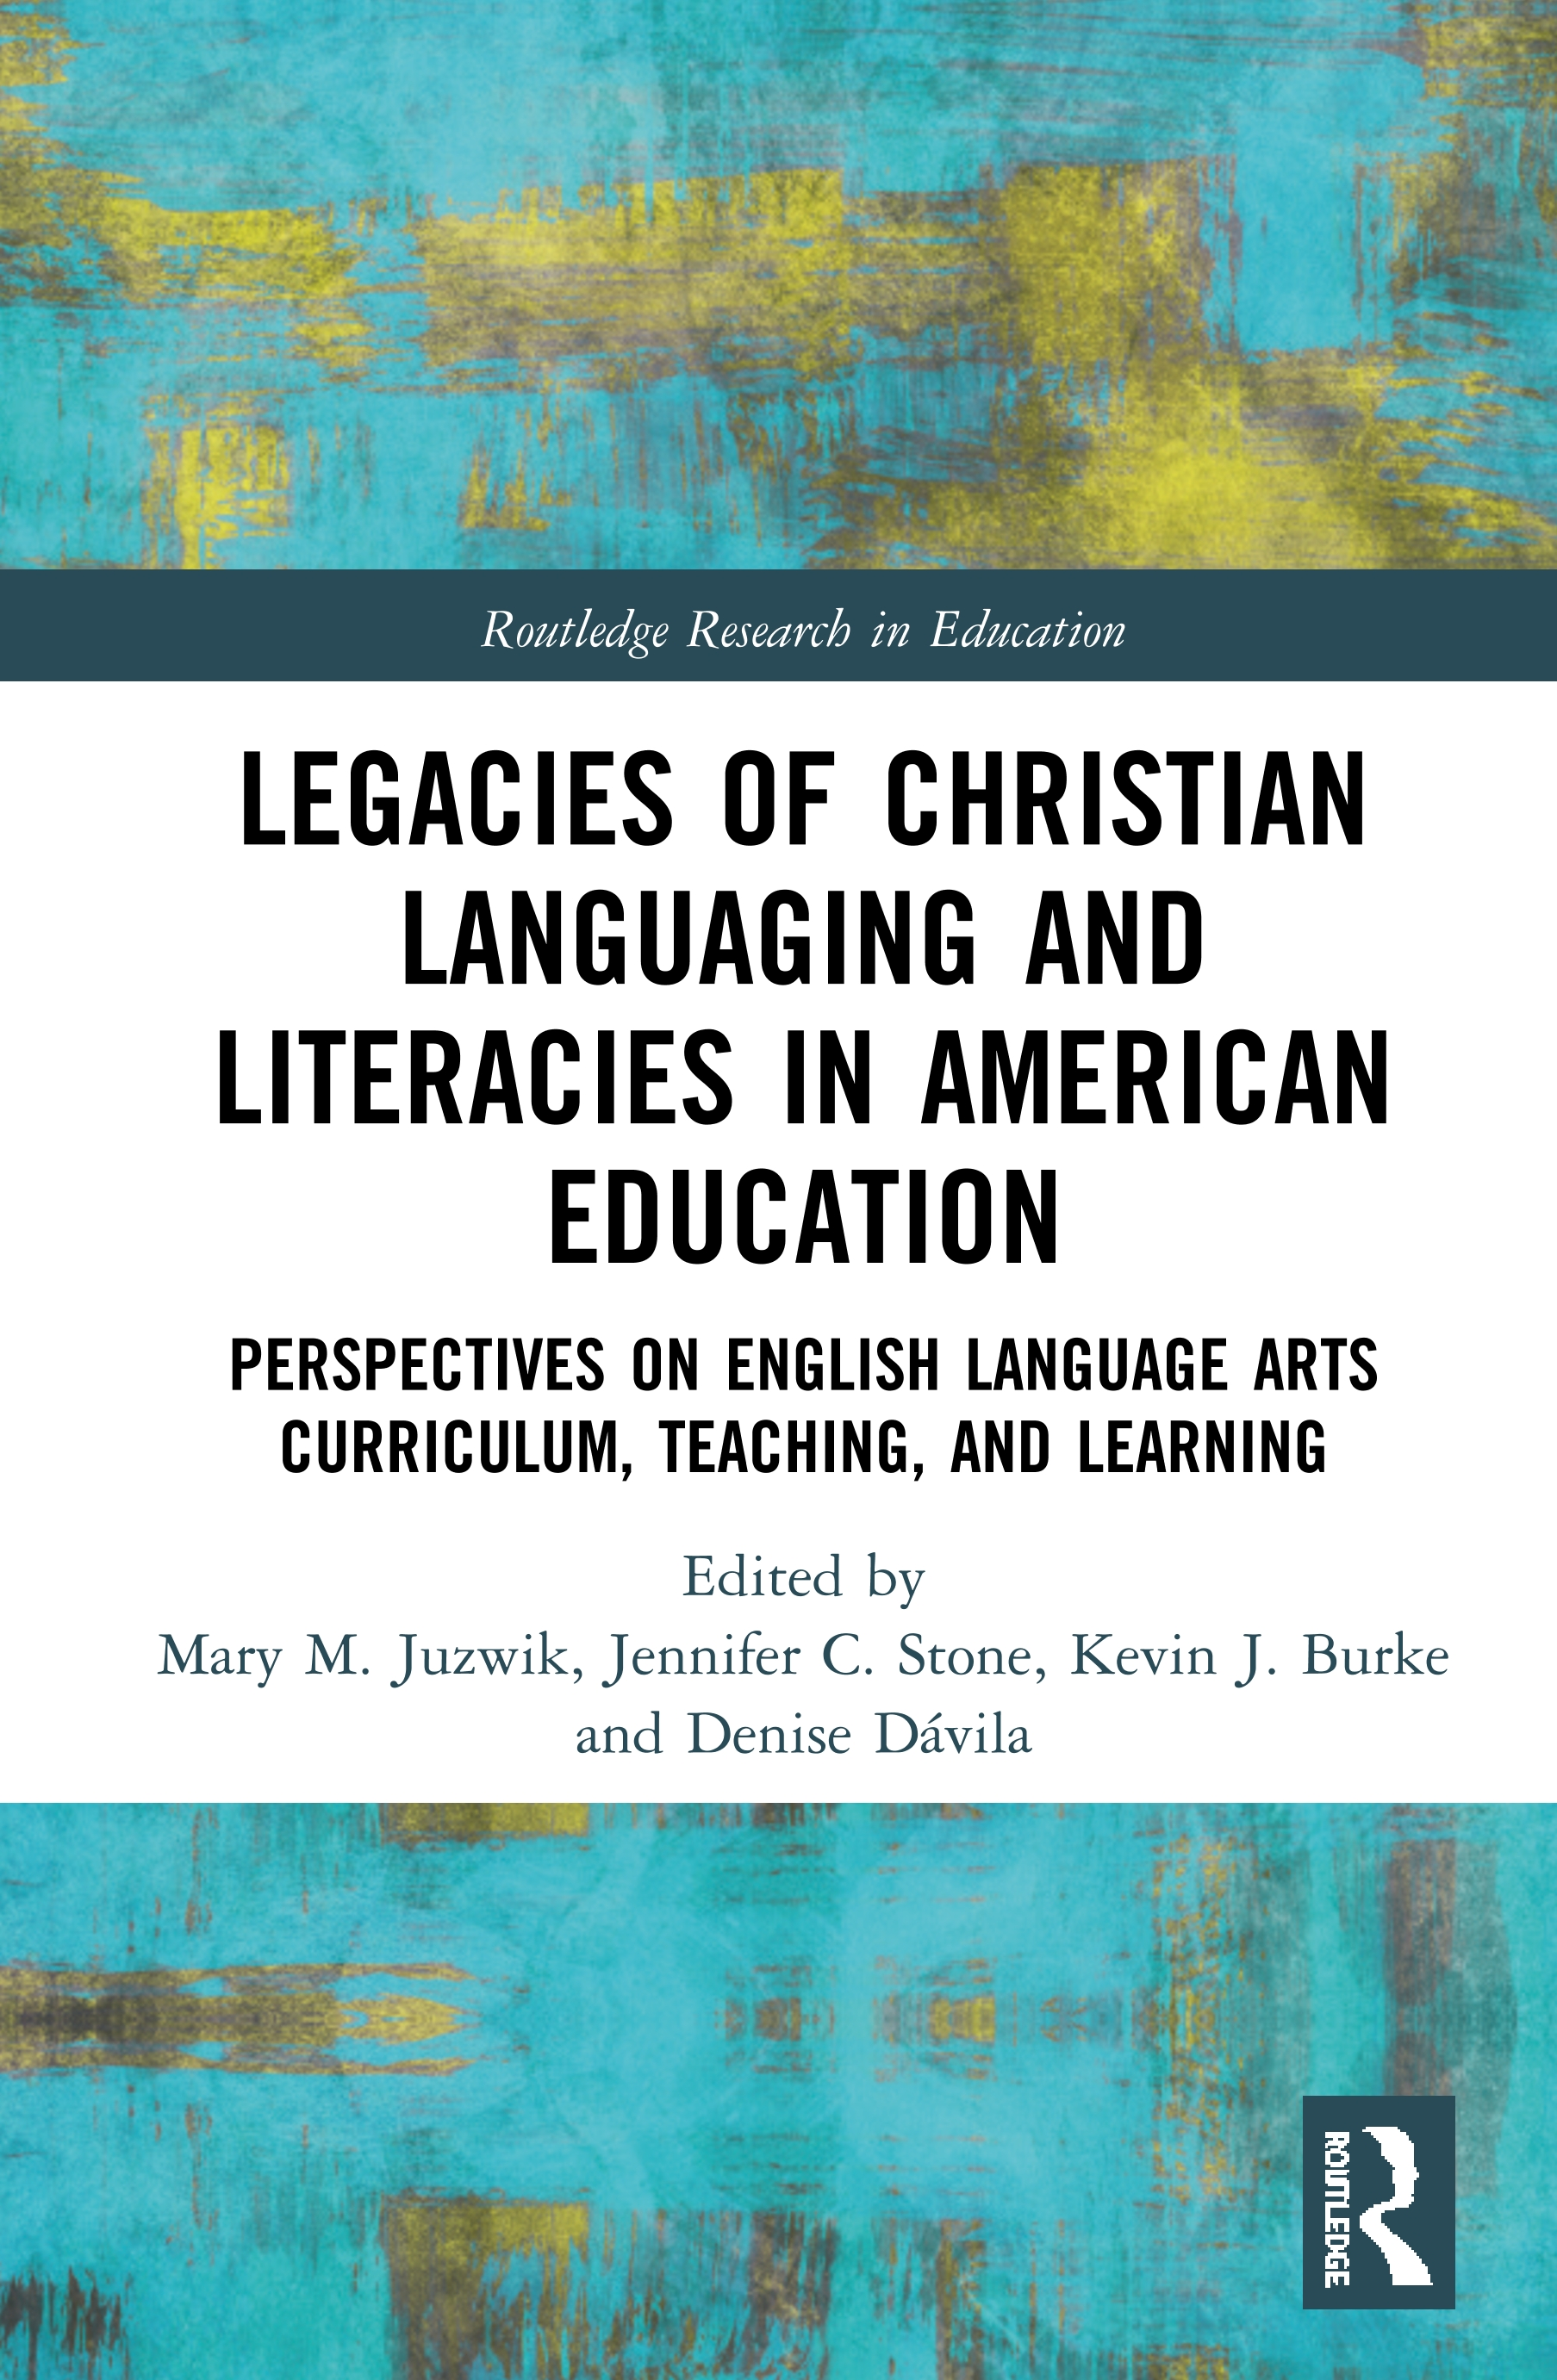 Legacies of Christian Languaging and Literacies in American Education: Perspectives on English Language Arts Curriculum, Teaching, and Learning book cover